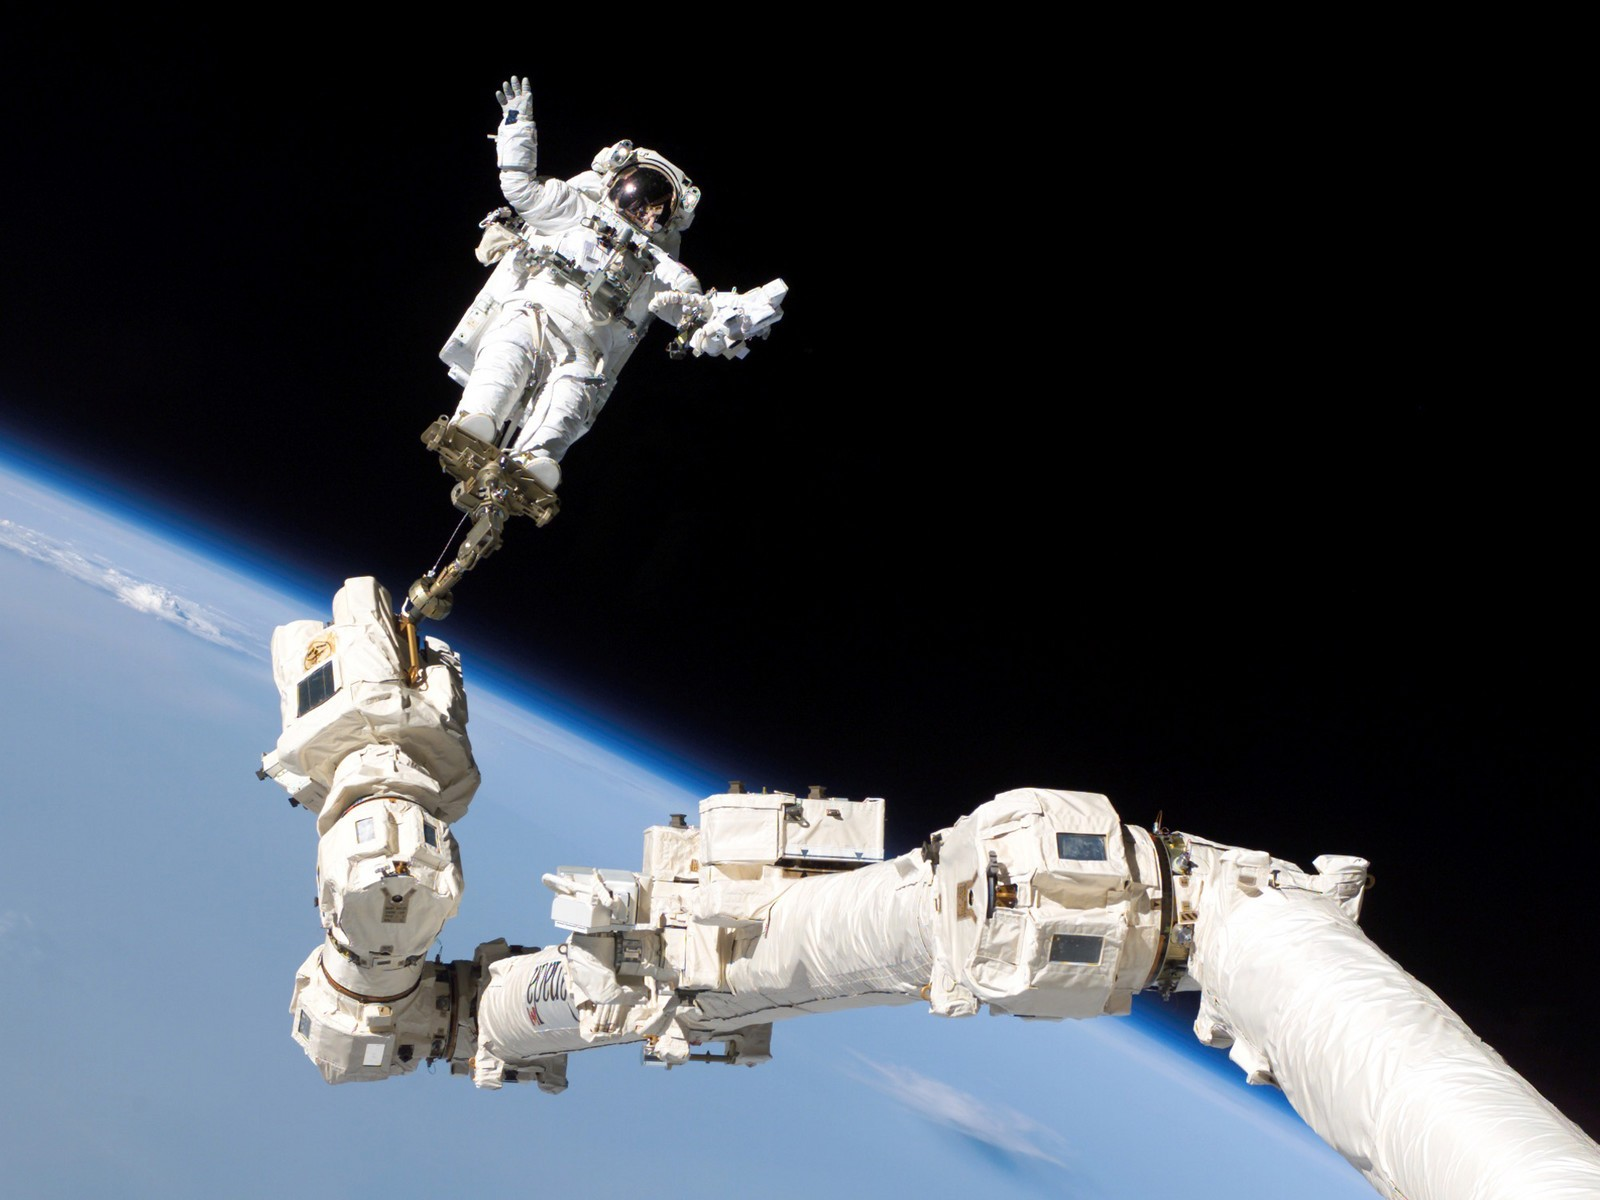 Oh Canadarm!